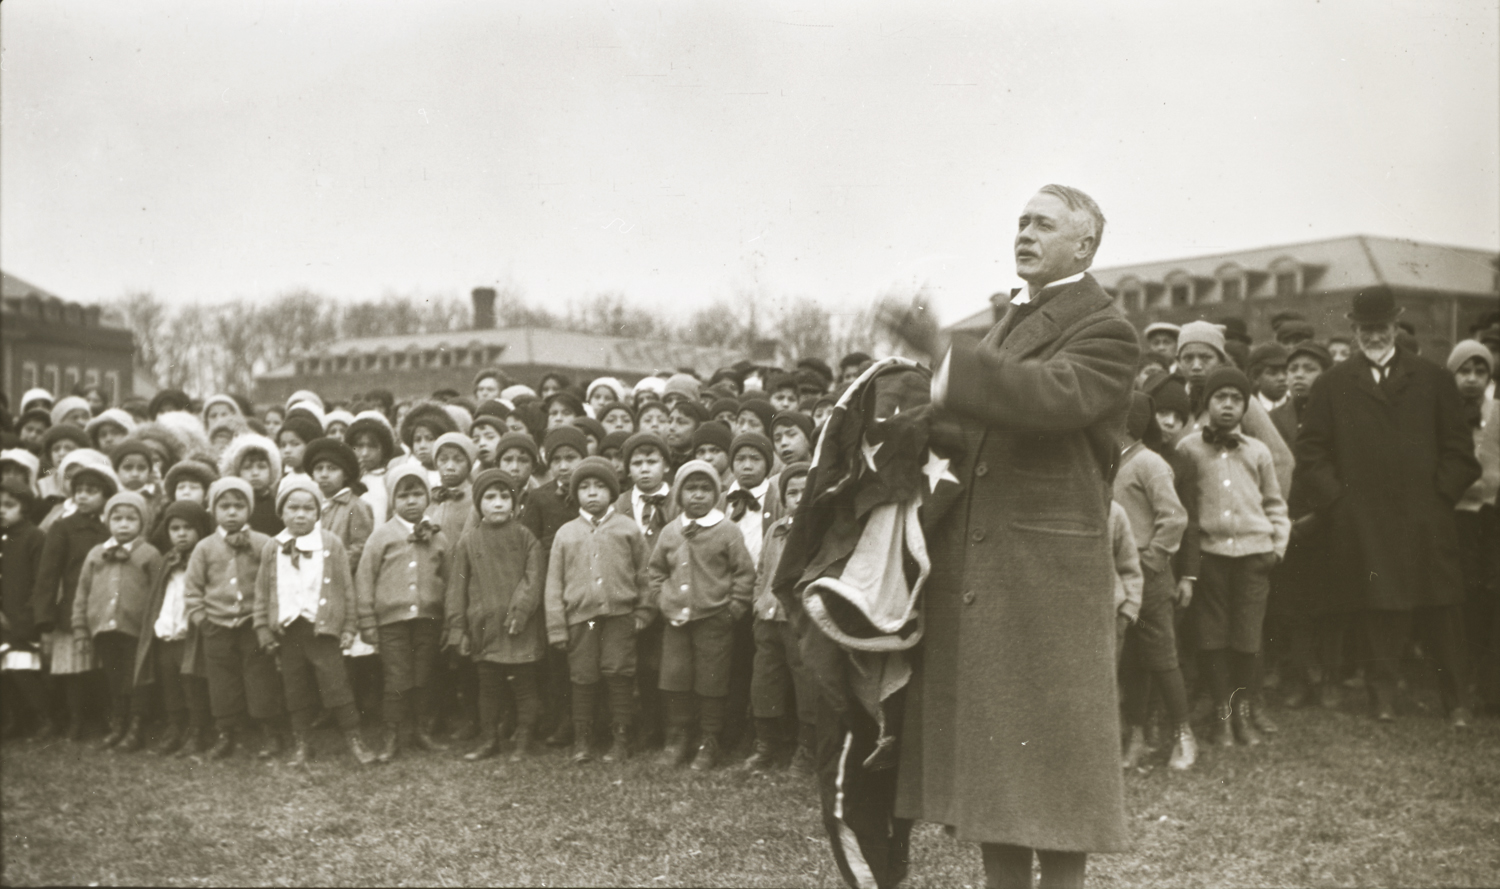 Thomas Indian School Children Listening to Dr. Dixon, November 28, 1913. Photograph by Joseph Dixon. Courtesy of the Mathers Museum of World Cultures, Wanamaker Collection, Indiana University, Bloomington, I.N., W-4311.